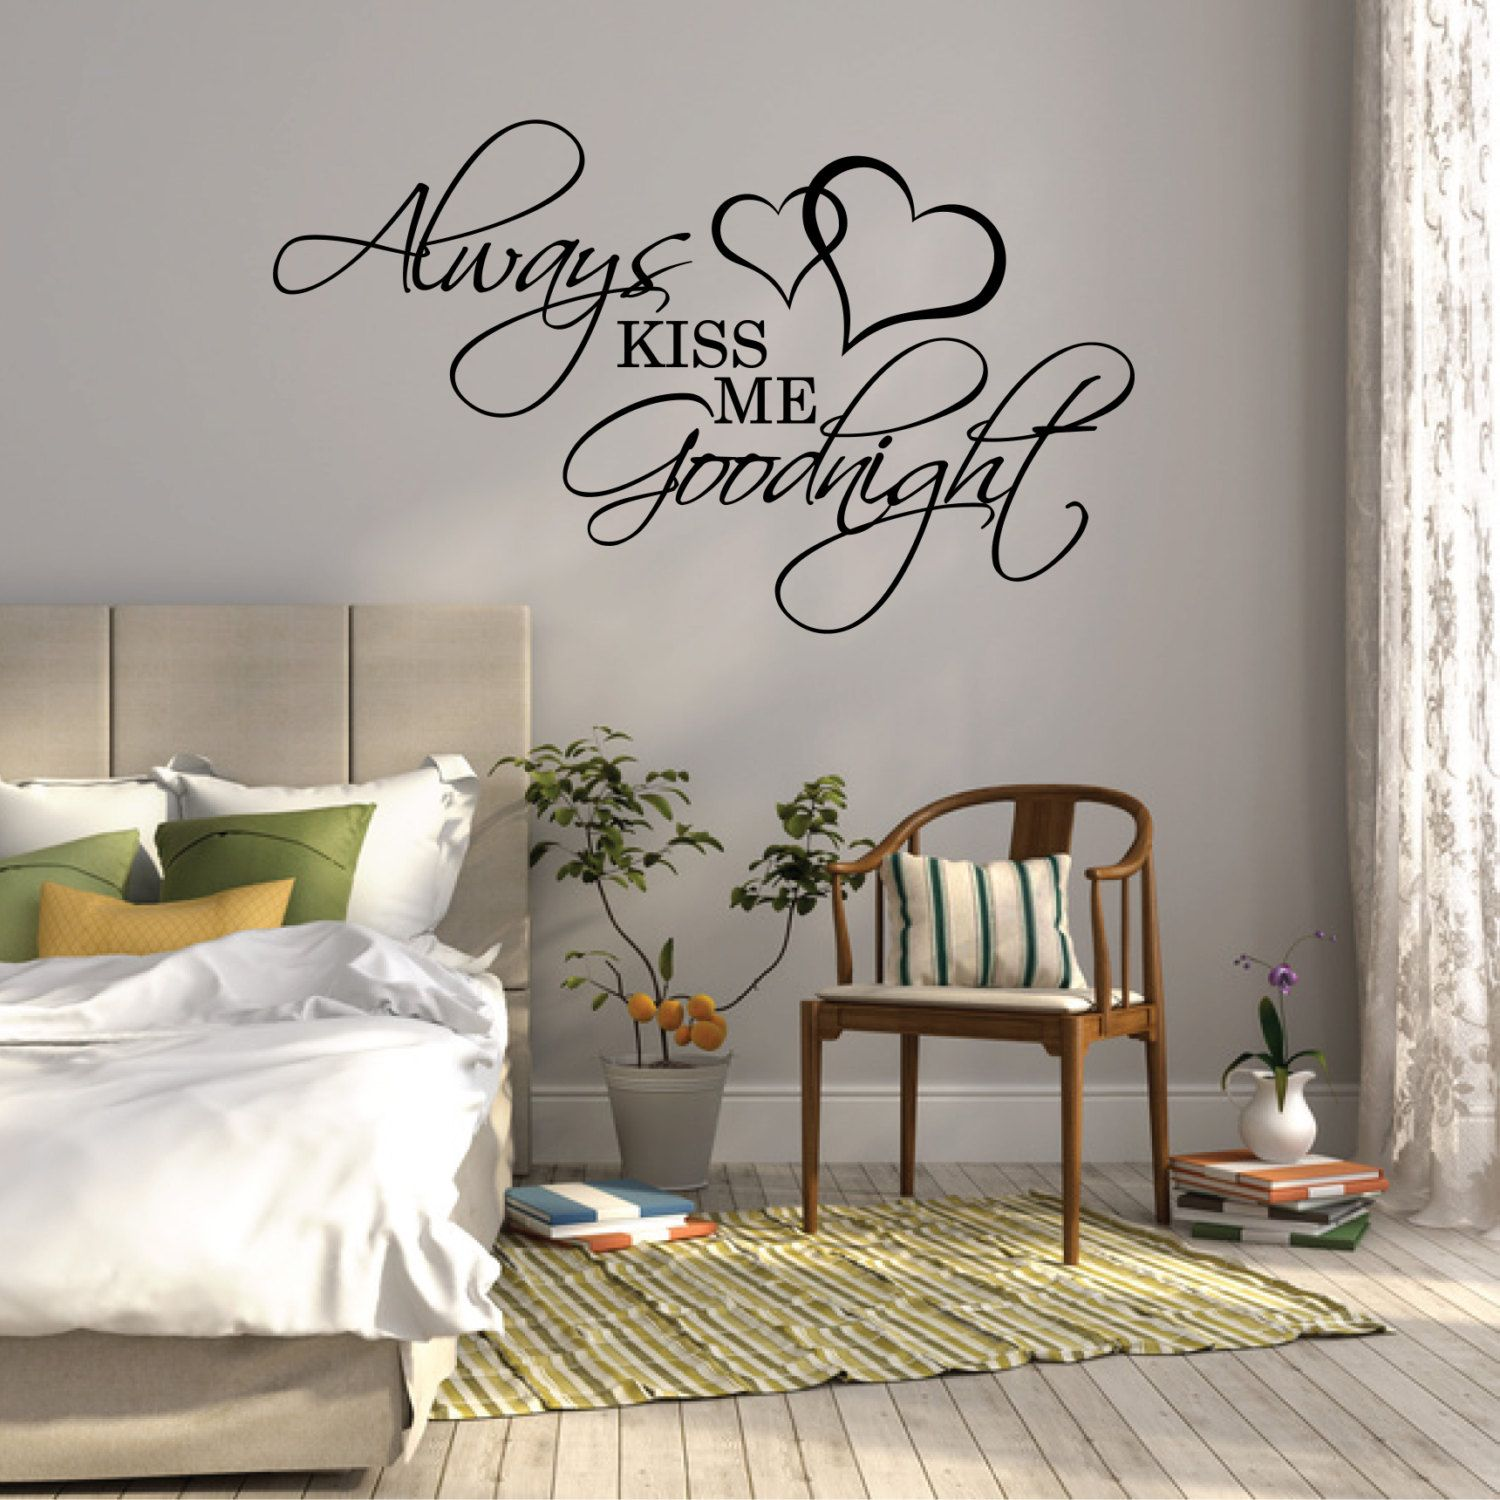 Wall sticker quote always kiss me goodnight over bed for Master bedroom wall decor